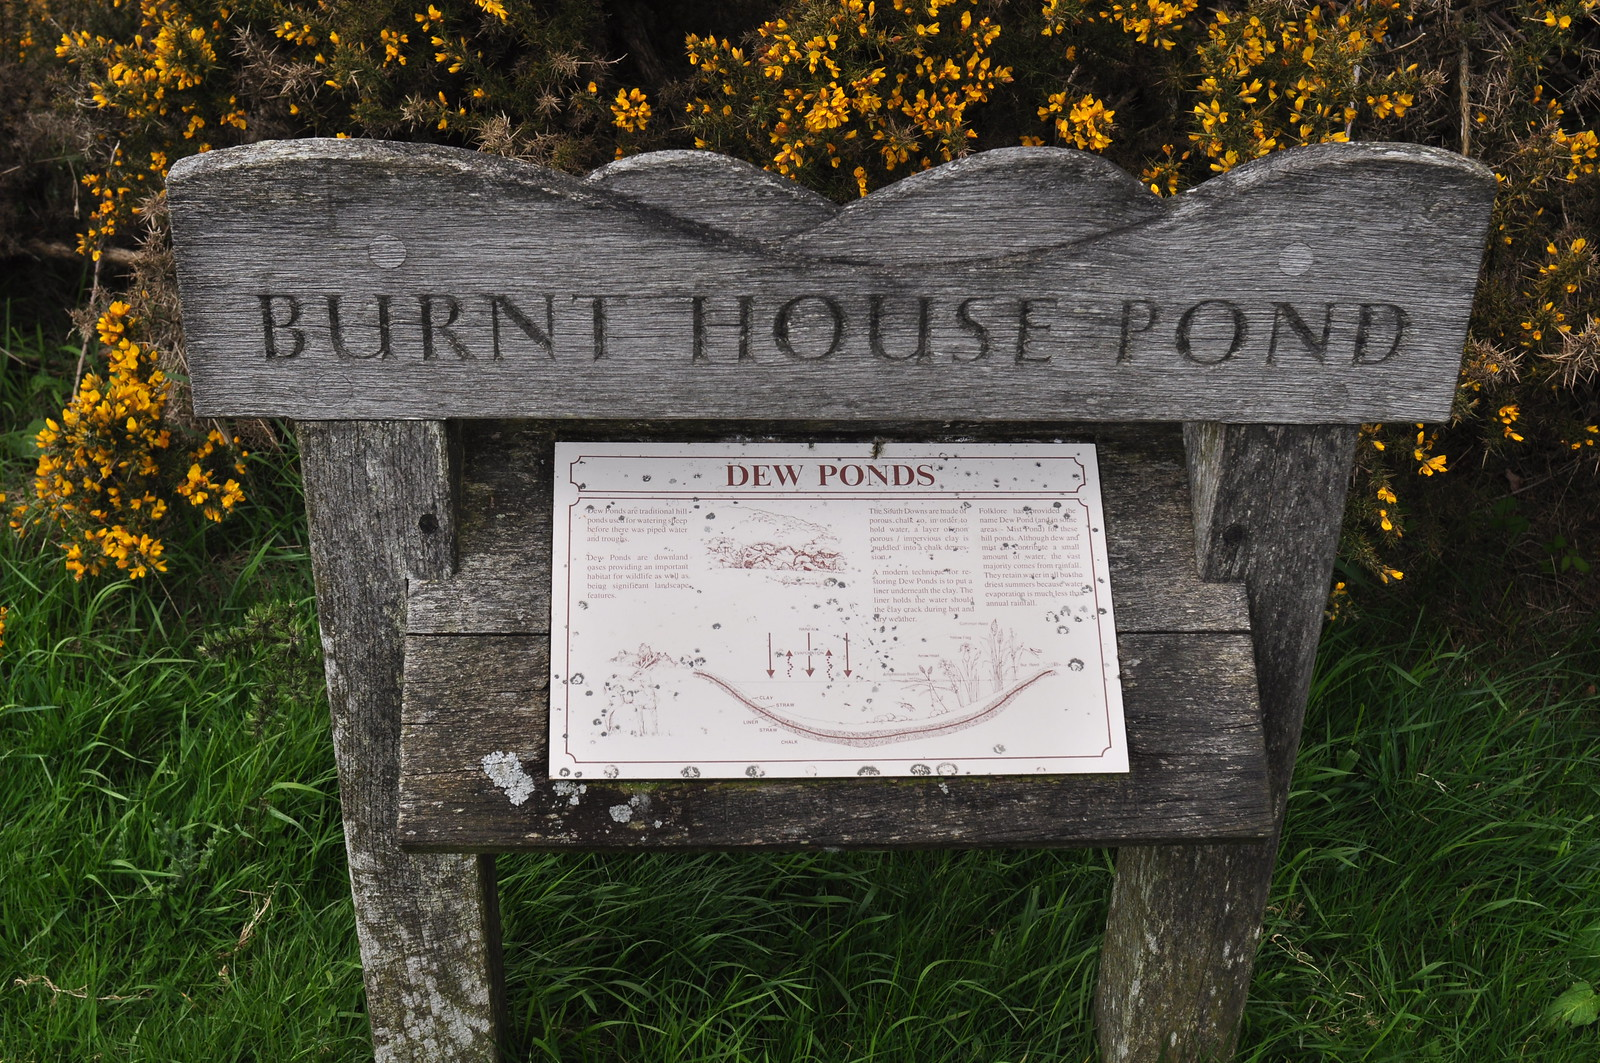 Burnt House Pond Dew Pond sign